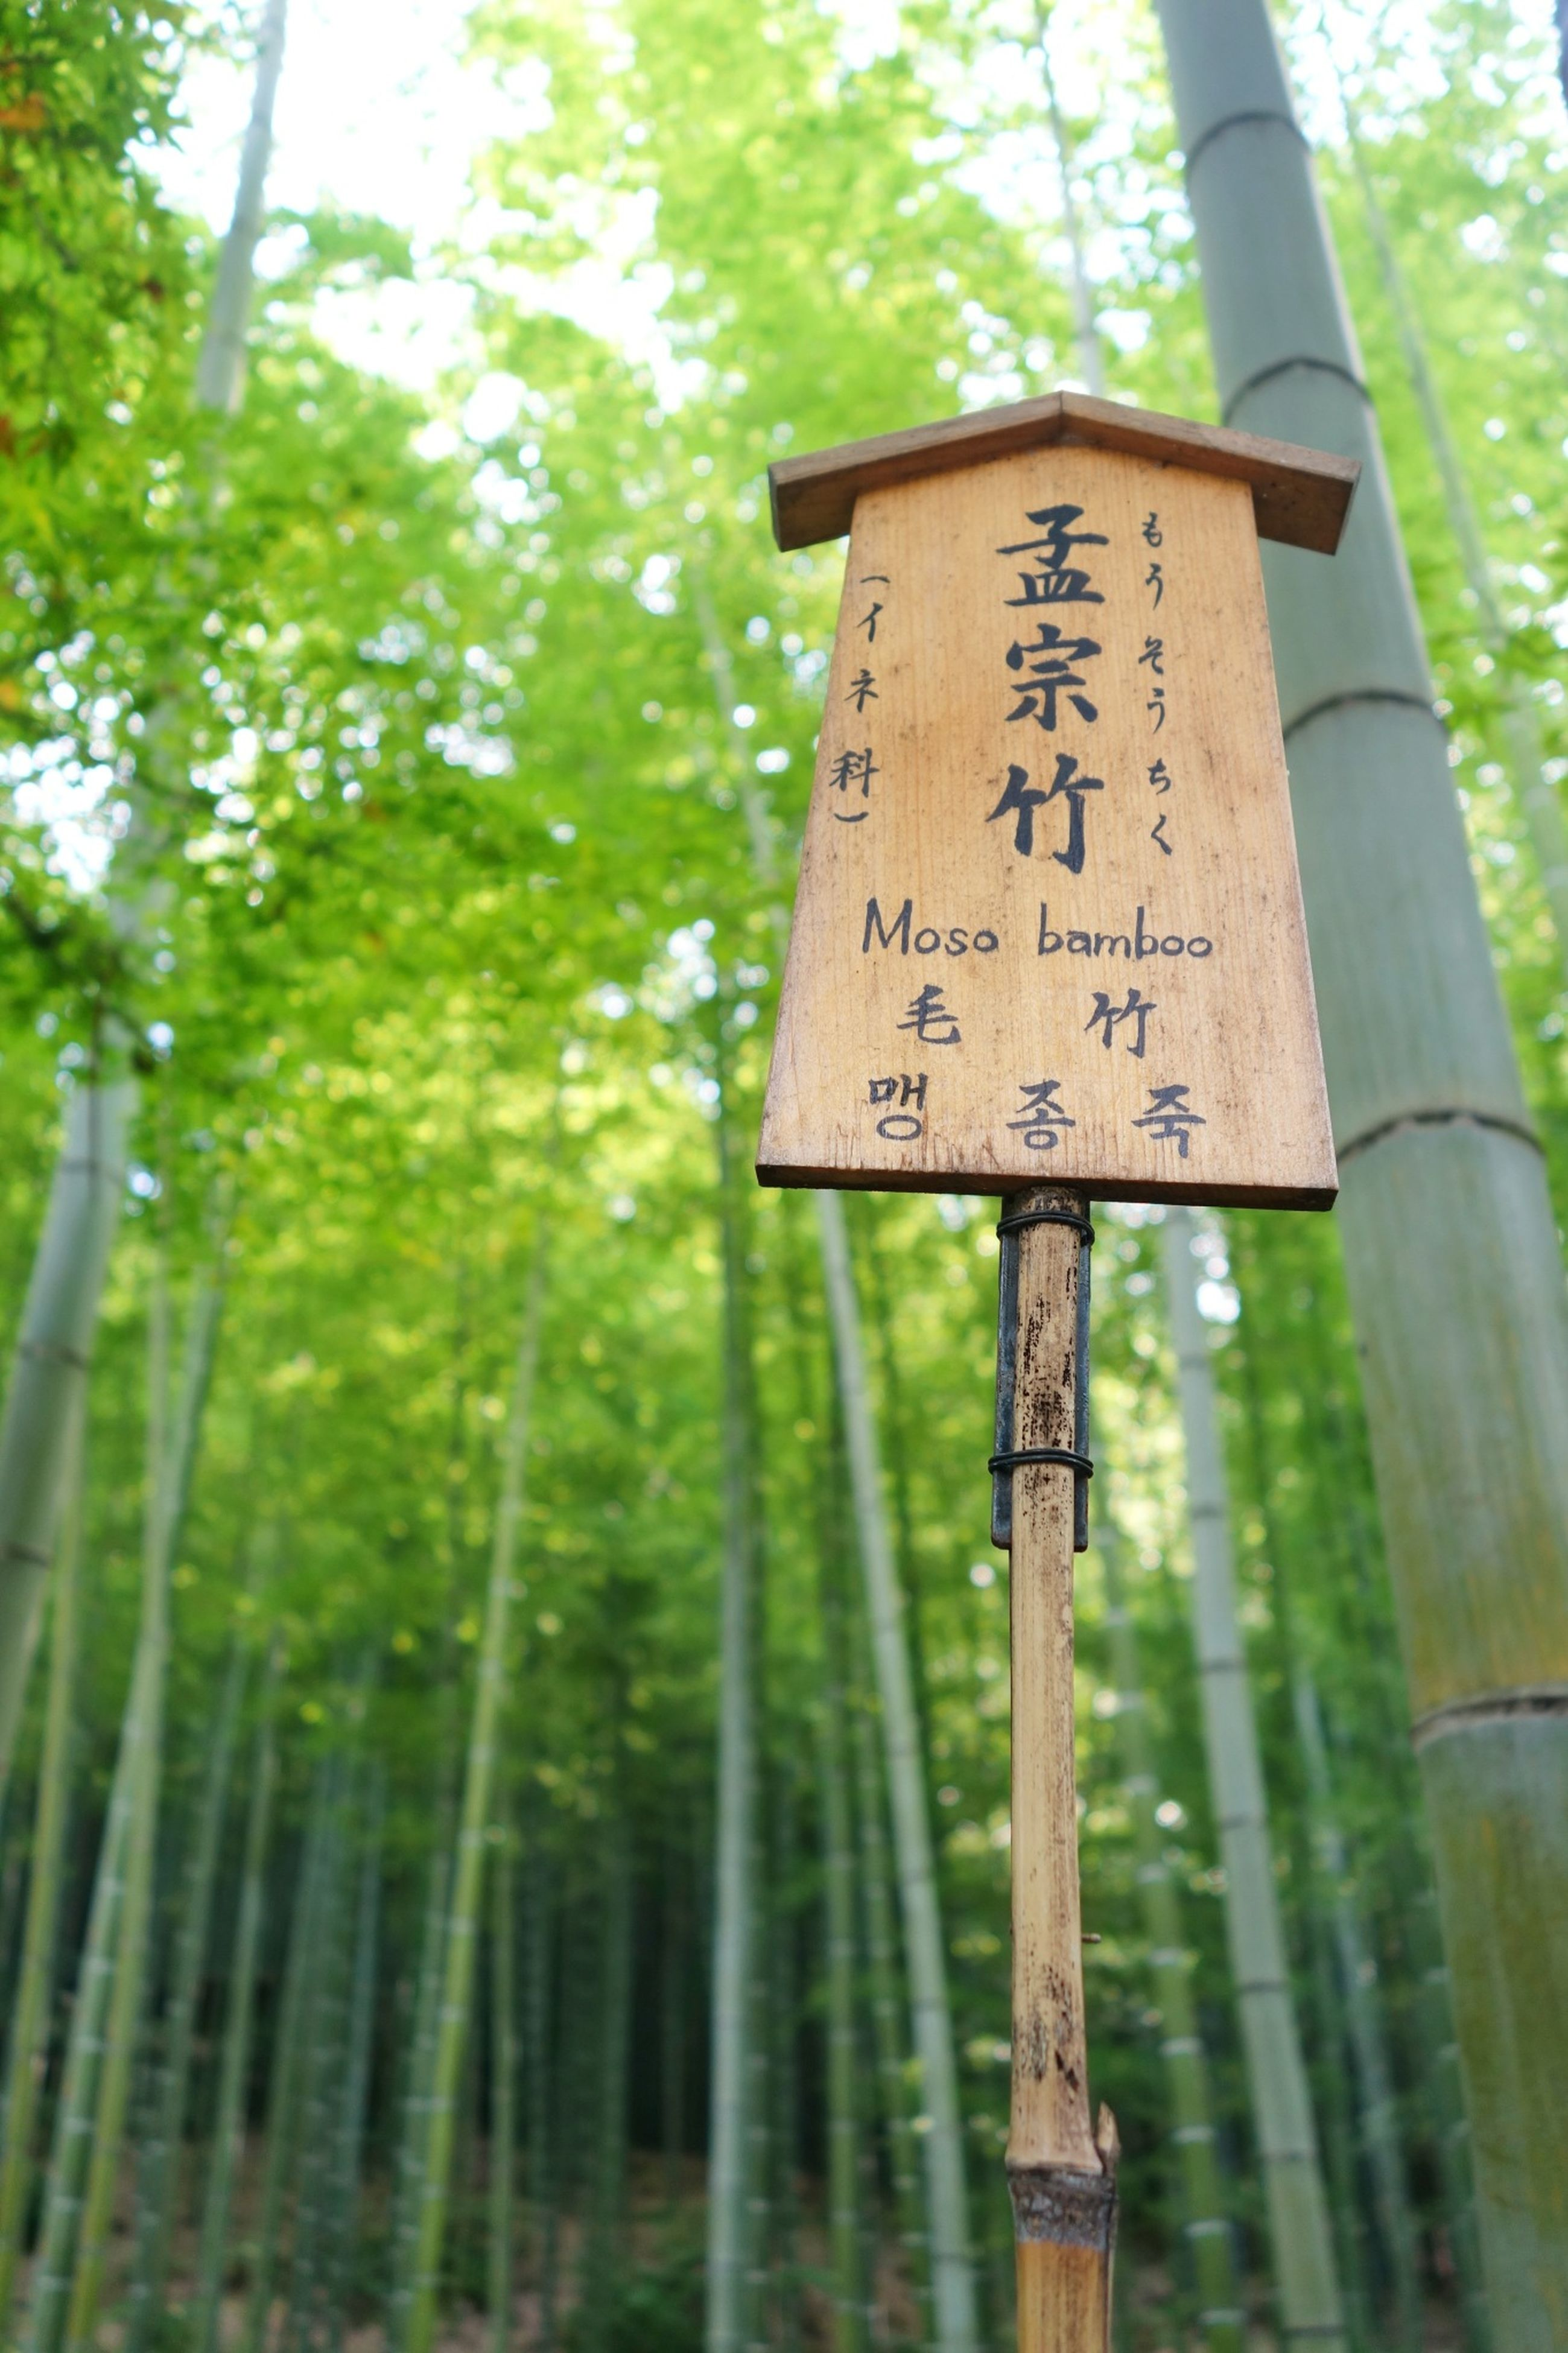 text, communication, tree, western script, information sign, sign, pole, guidance, growth, road sign, focus on foreground, close-up, information, nature, day, low angle view, tree trunk, non-western script, no people, directional sign